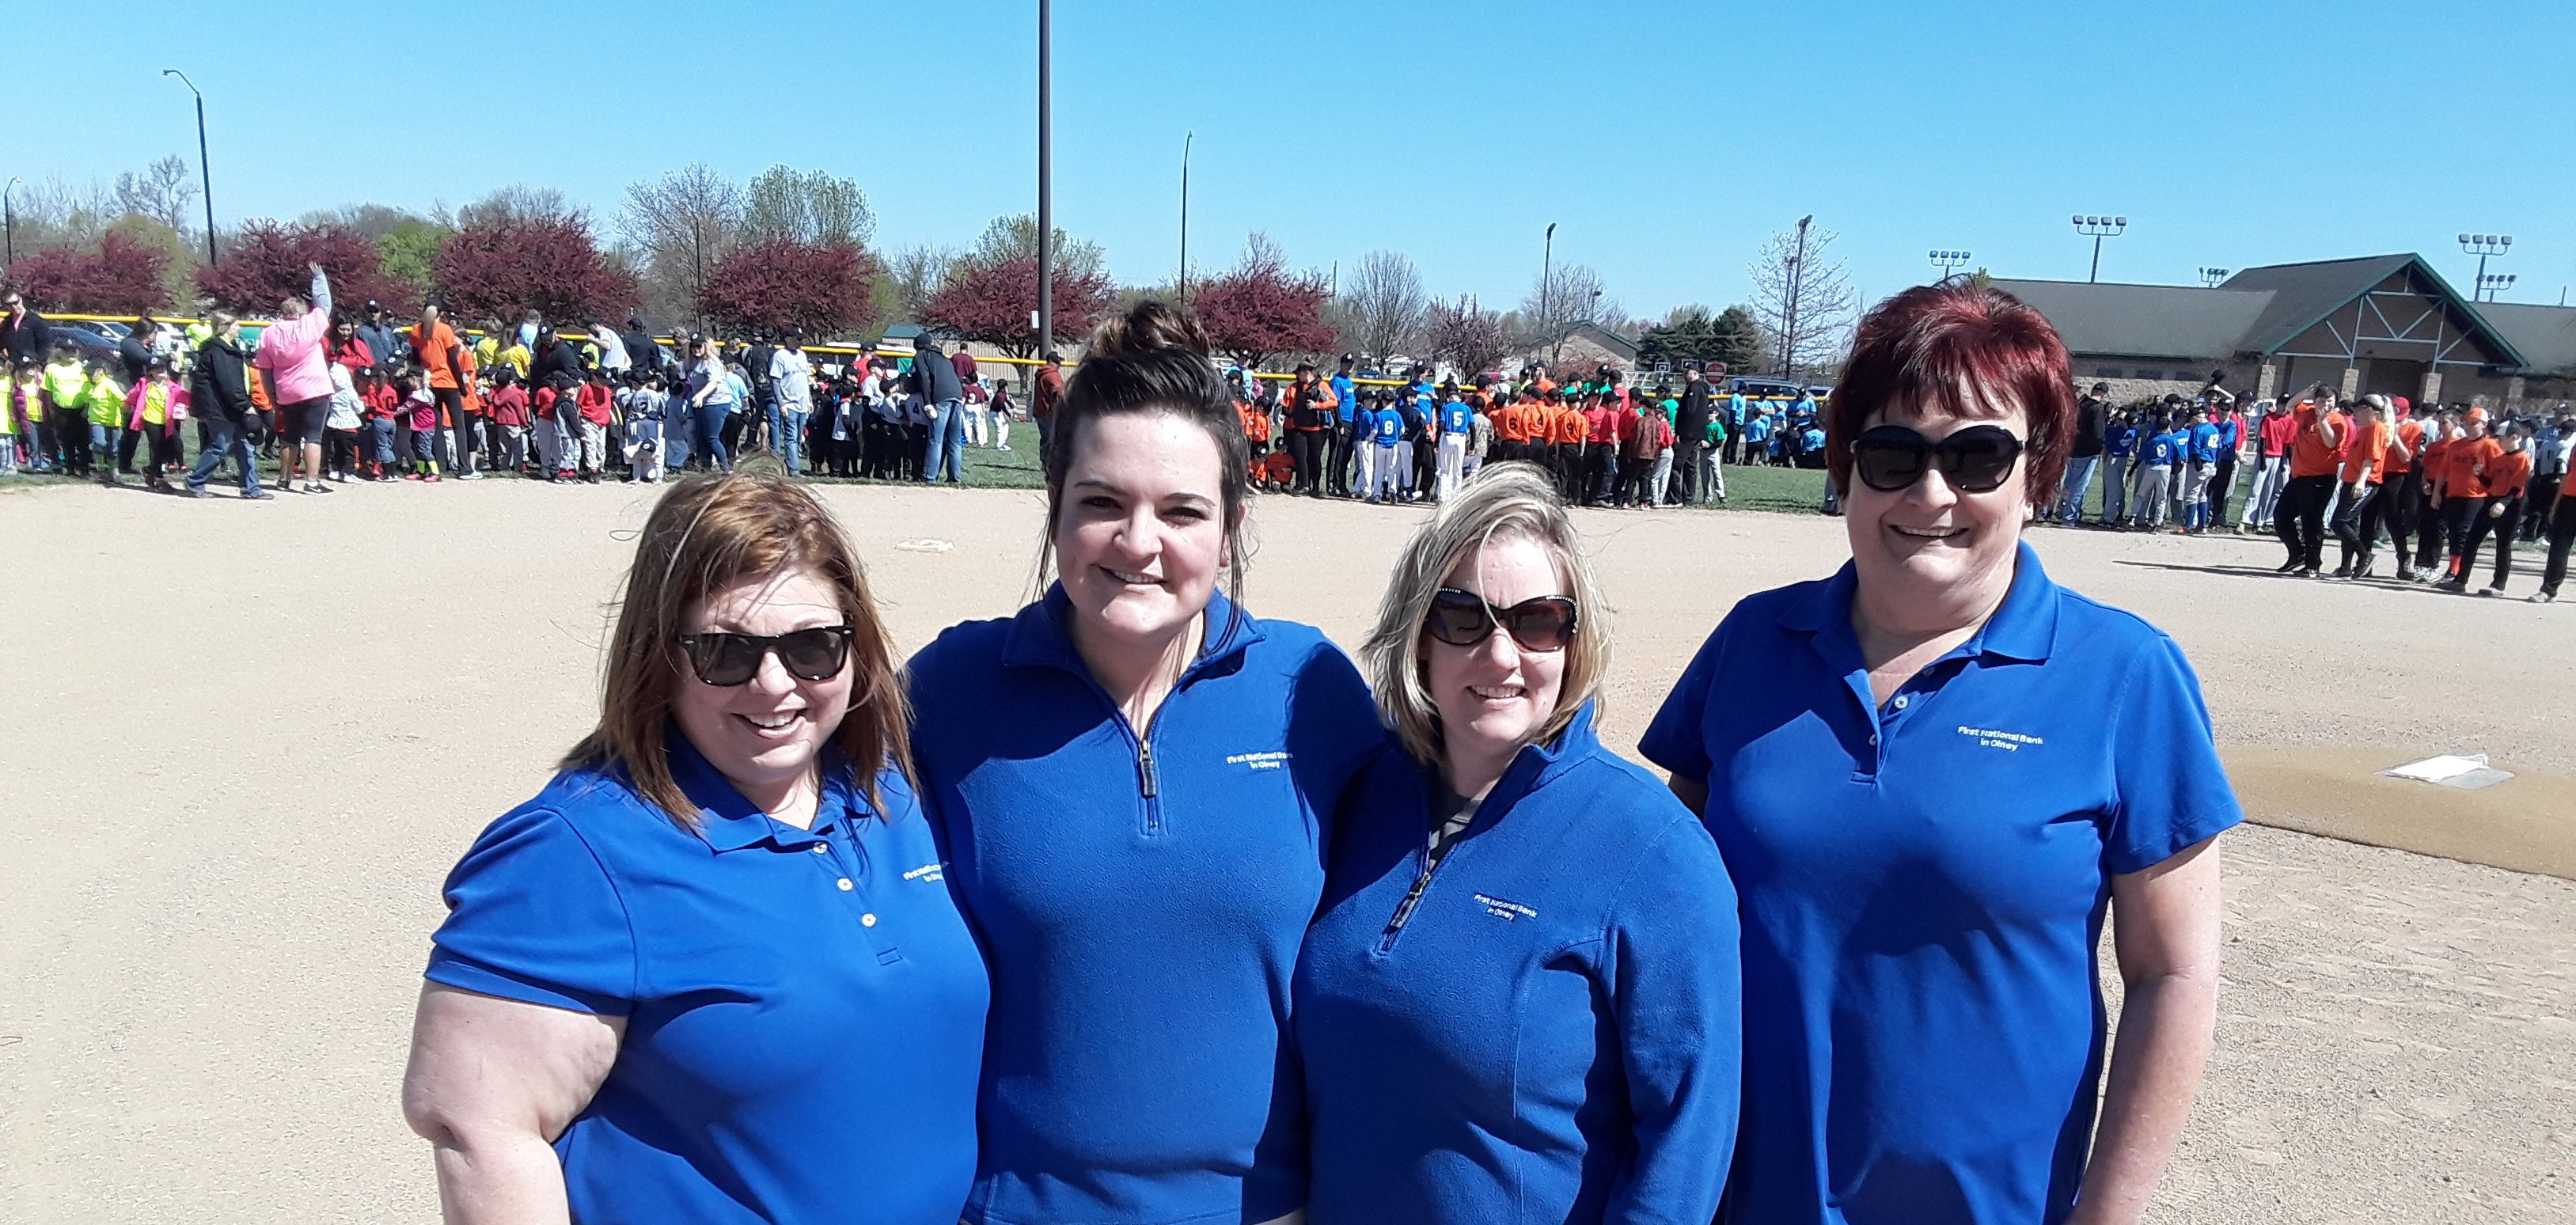 FNB employees at Little League Opening Day